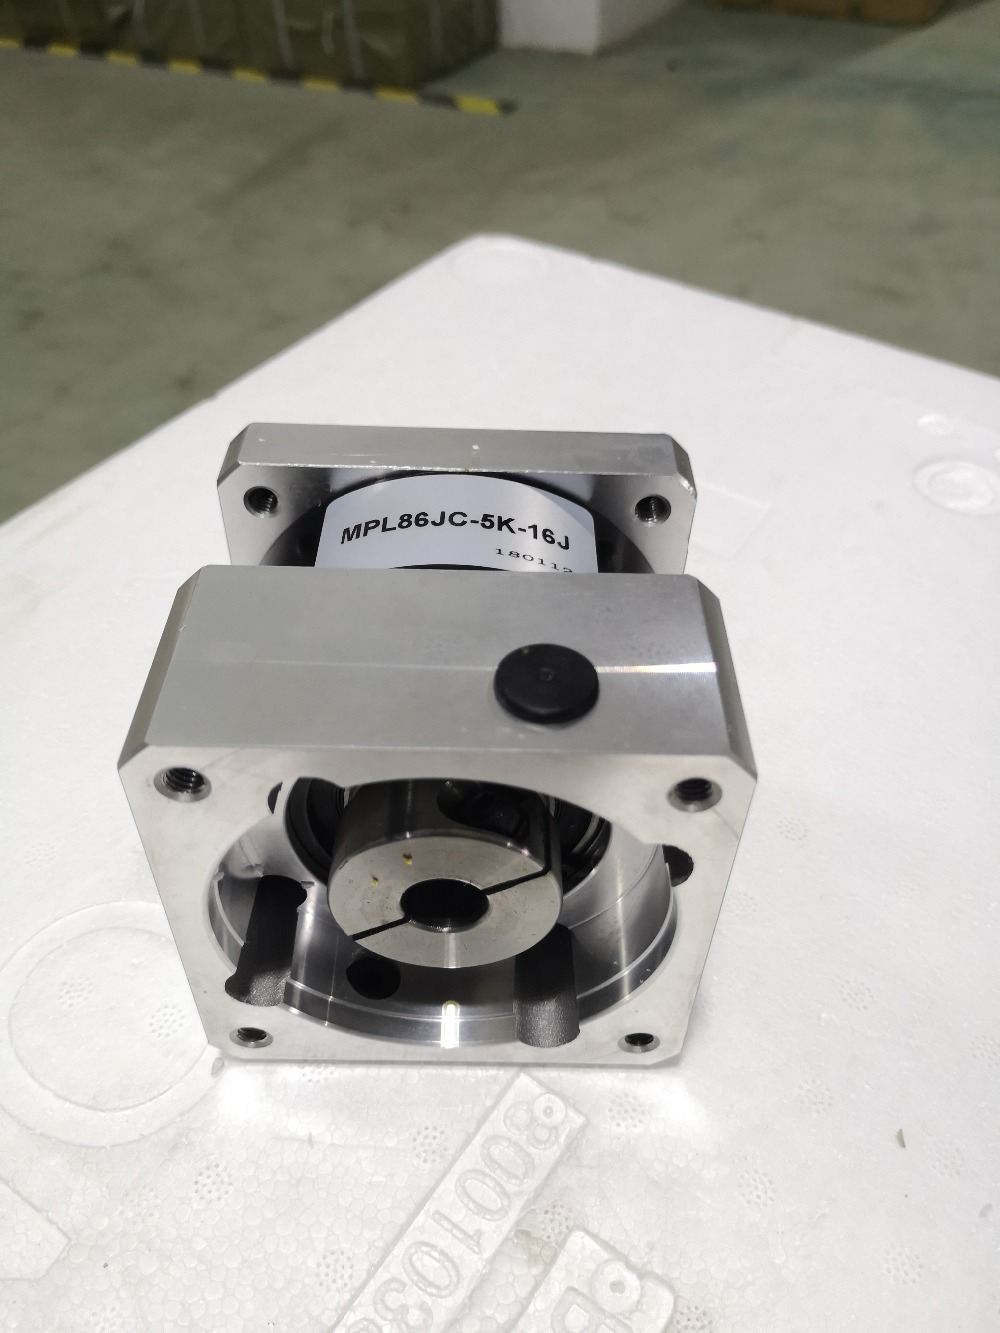 New 5:1 NEMA34 Planetary Gearbox for 86 mm Gear Stepper Motor 50N.m (6944oz-in) Rated Torque Ratio